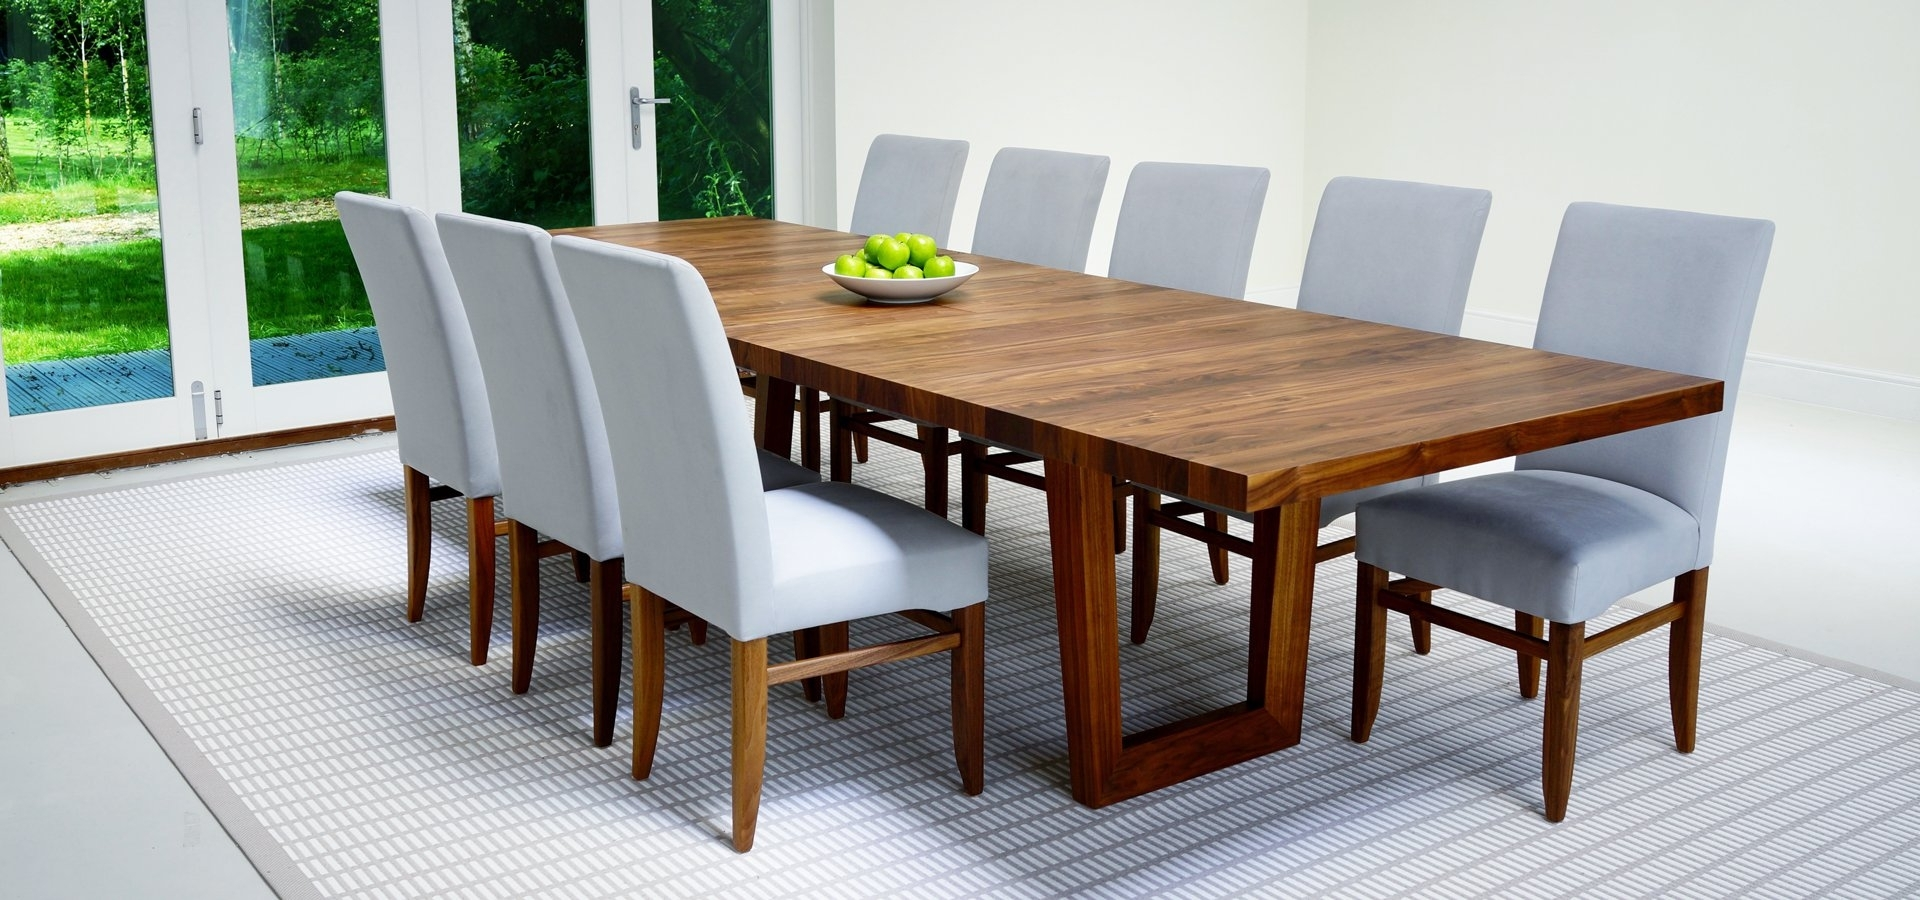 Contemporary Dining Tables & Furnitureberrydesign. Bespoke /custom Intended For Most Recent Oak Extendable Dining Tables And Chairs (Gallery 17 of 25)